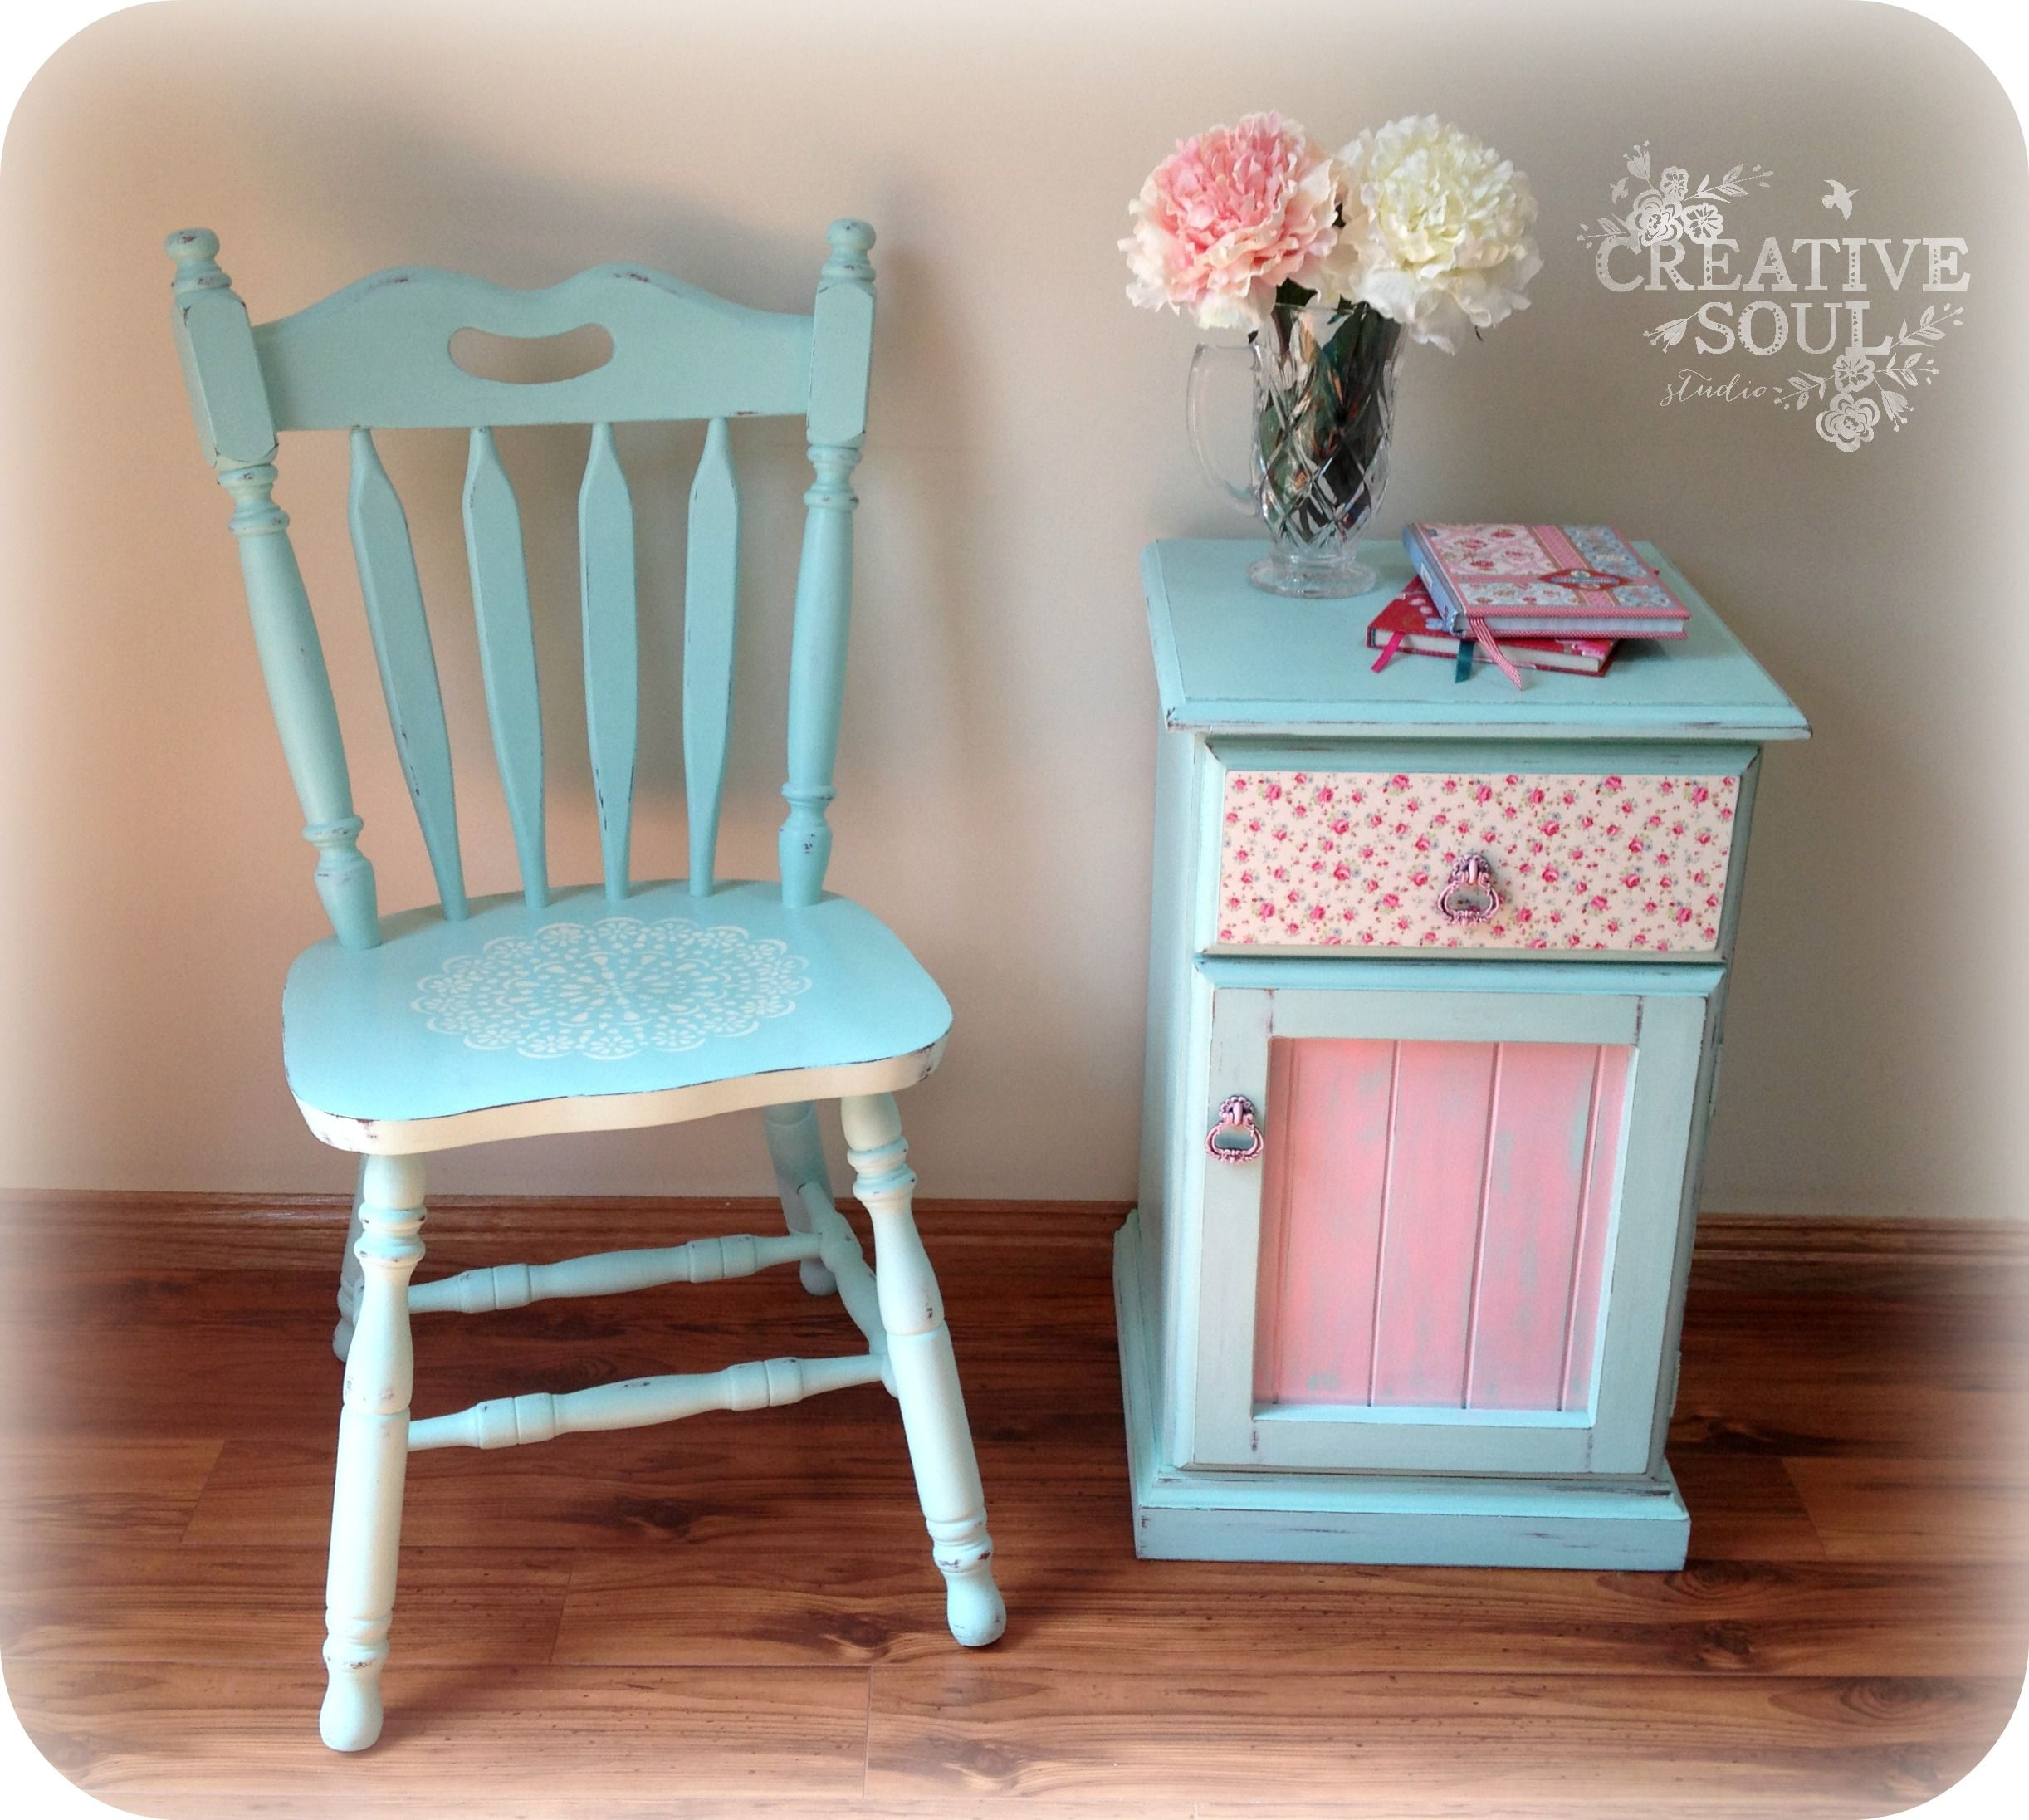 Shabby chic painted rocking chairs - 10 Best Images About Painting On Pinterest Rocking Chairs Sandpaper And Shabby